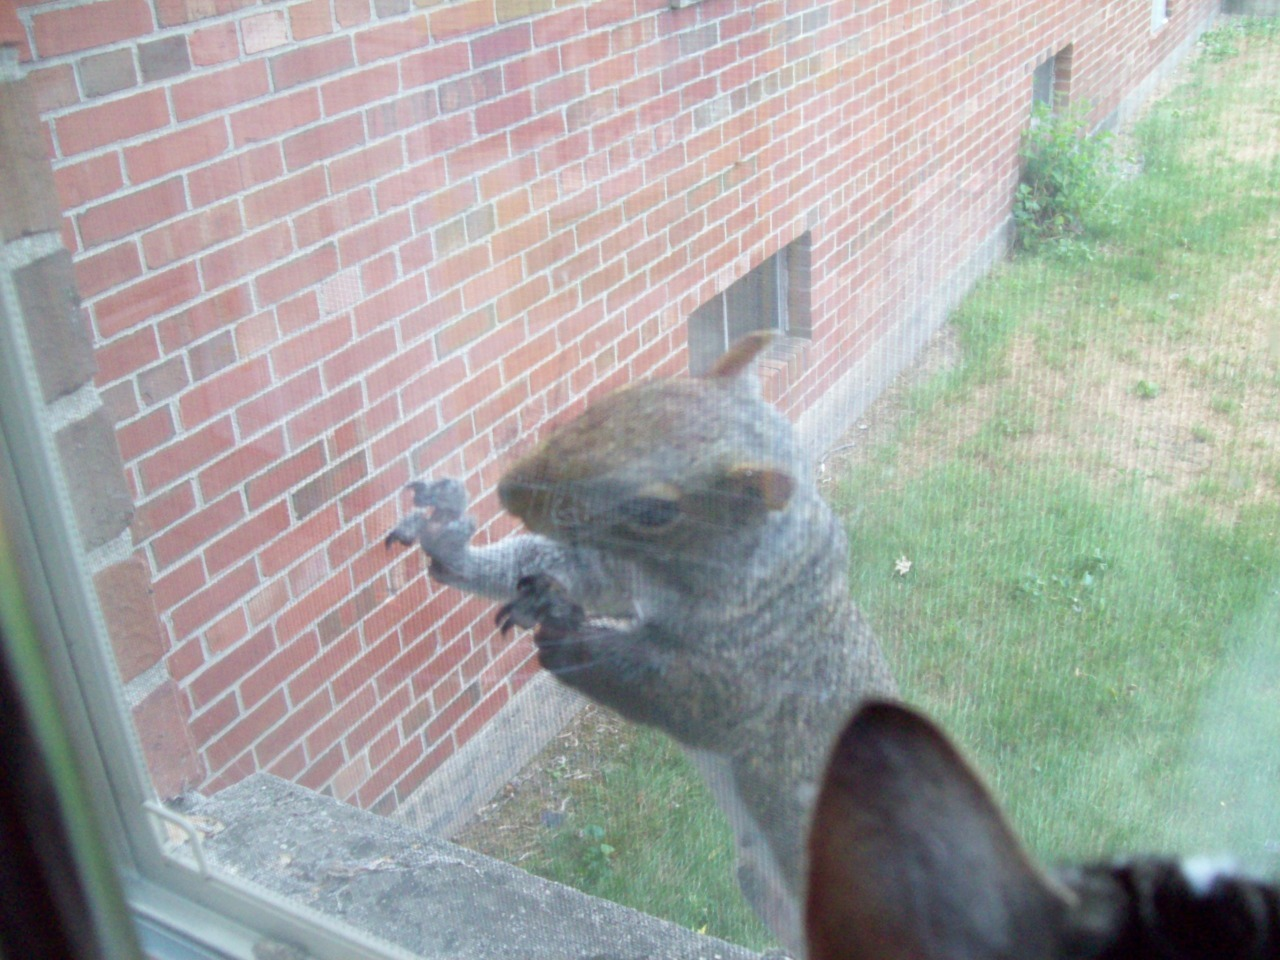 pattyloveslamp:  A squirrel tried to break into my apartment D:   the squirrel crime rate has really been going up… next thing you know gangs of squirrels will be moving in a demanding protection money